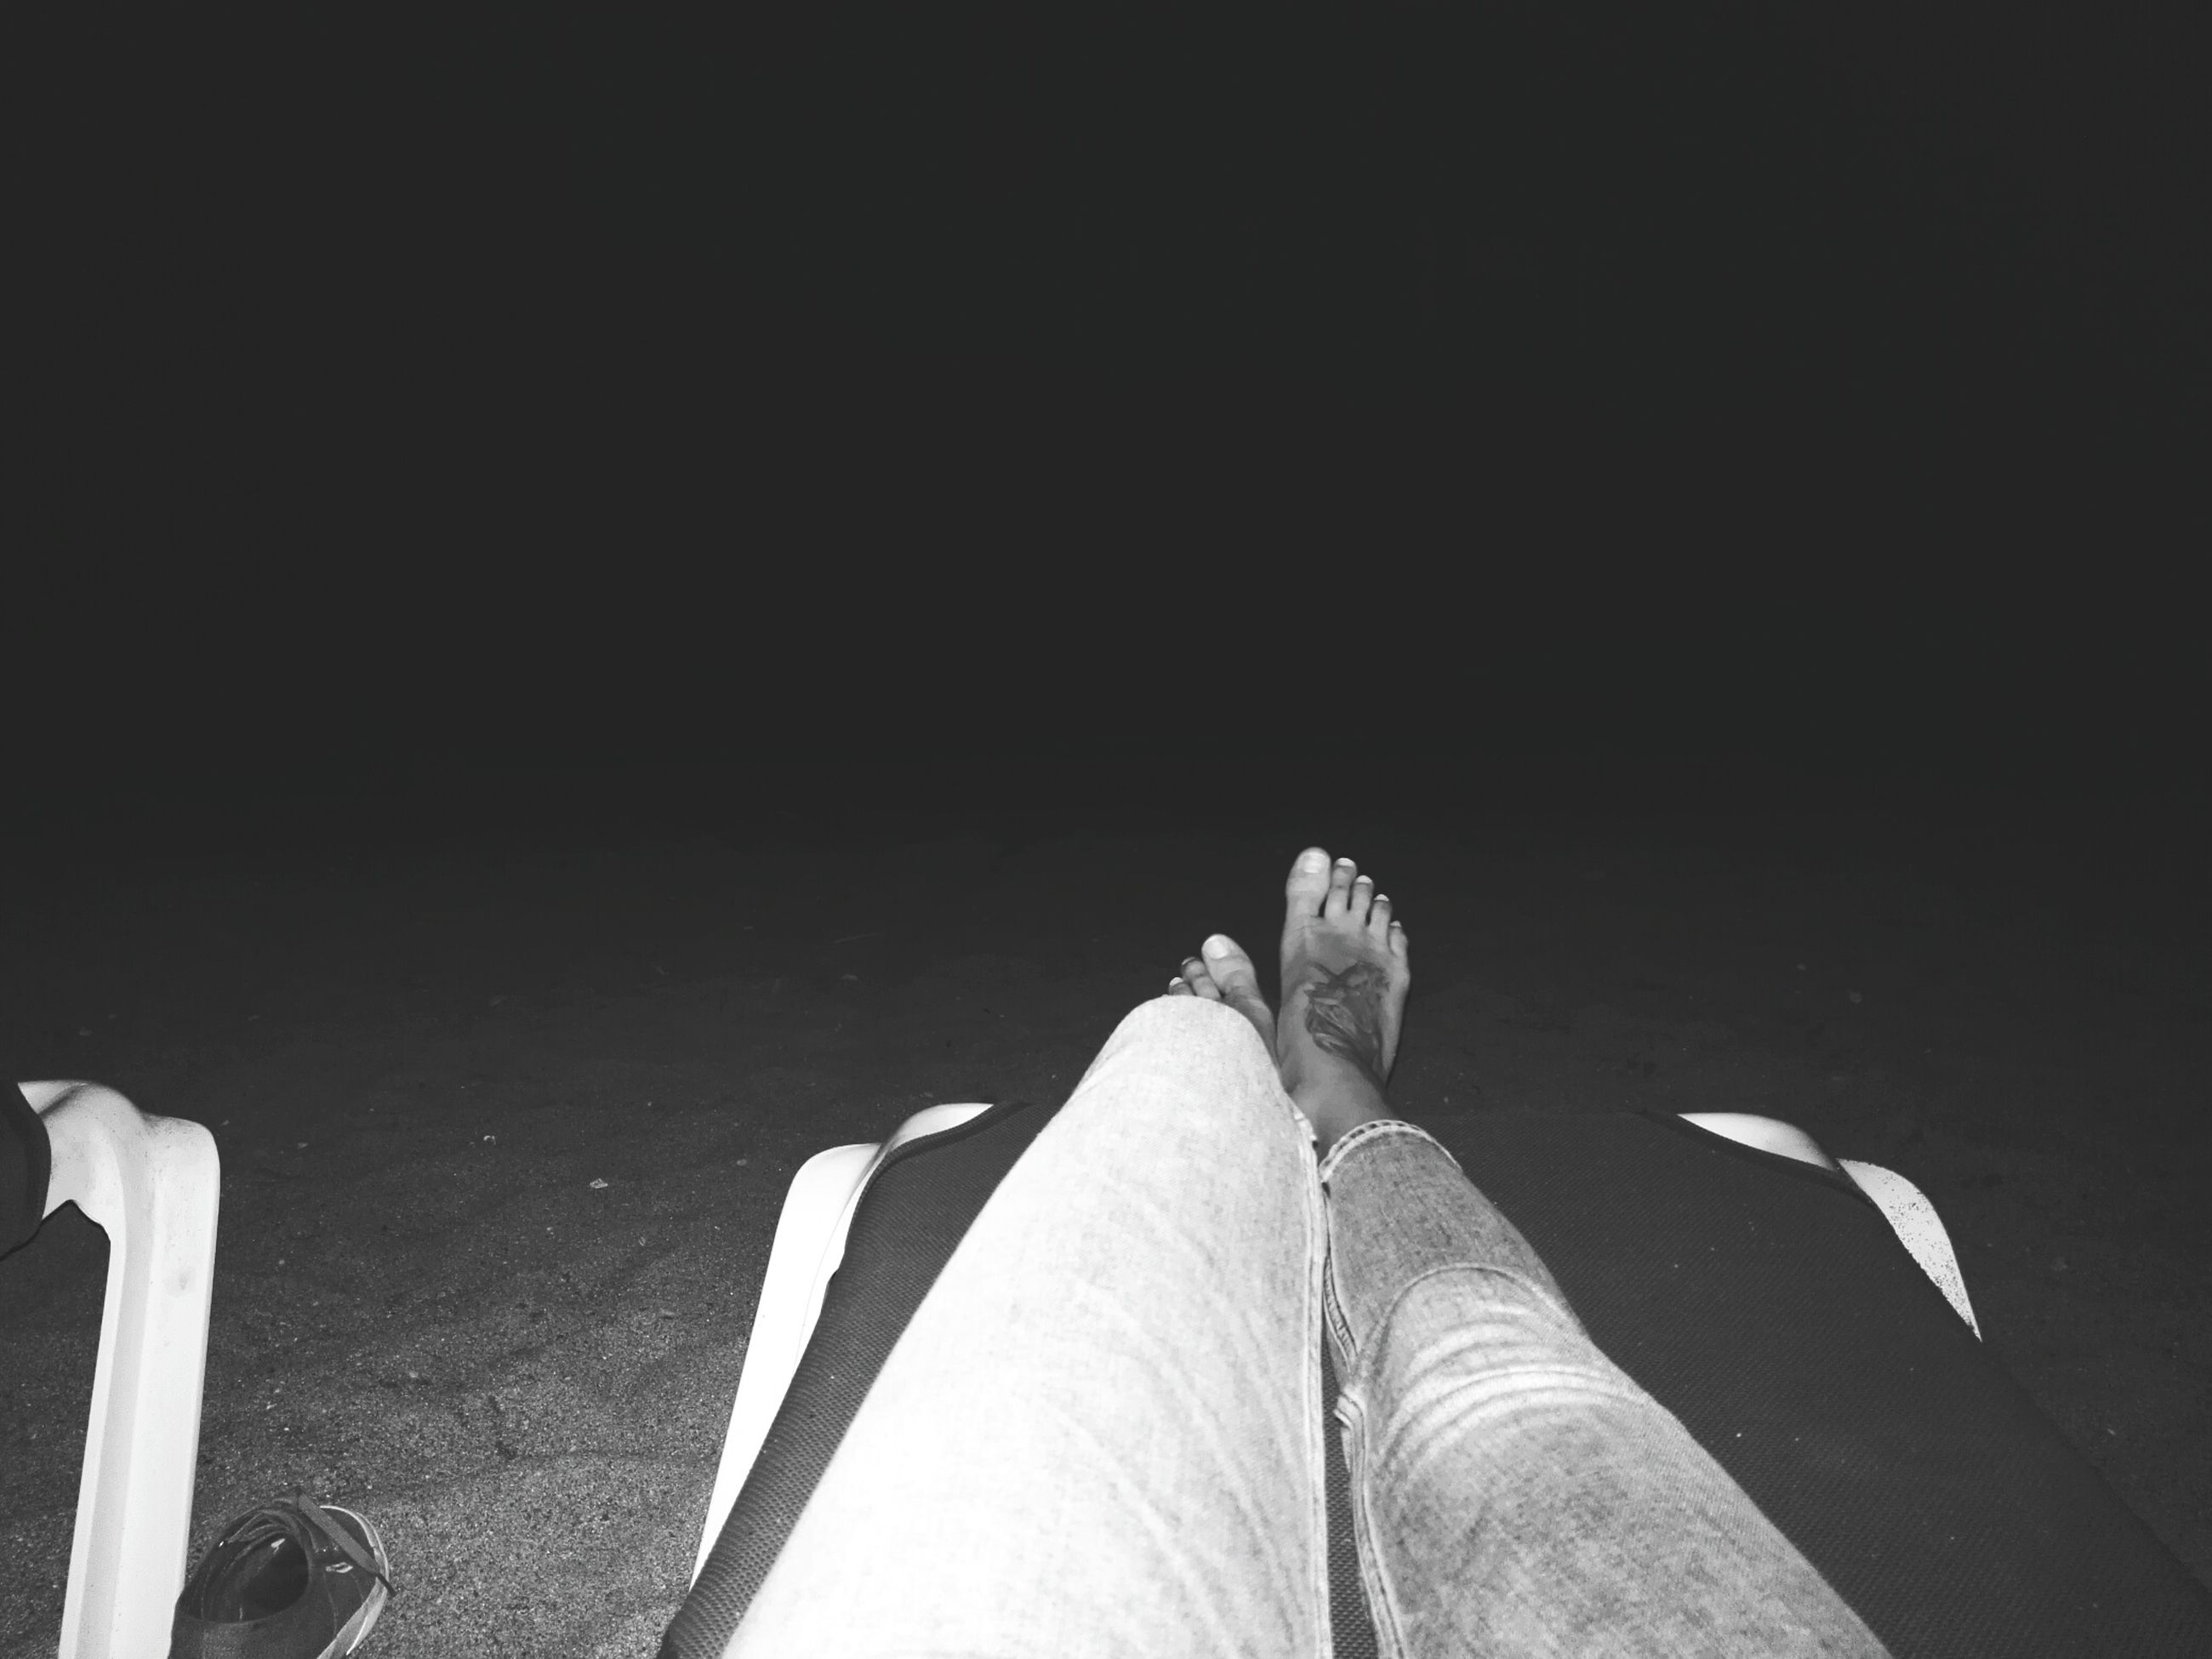 lifestyles, low section, personal perspective, person, leisure activity, copy space, standing, barefoot, men, human foot, part of, indoors, relaxation, shadow, high angle view